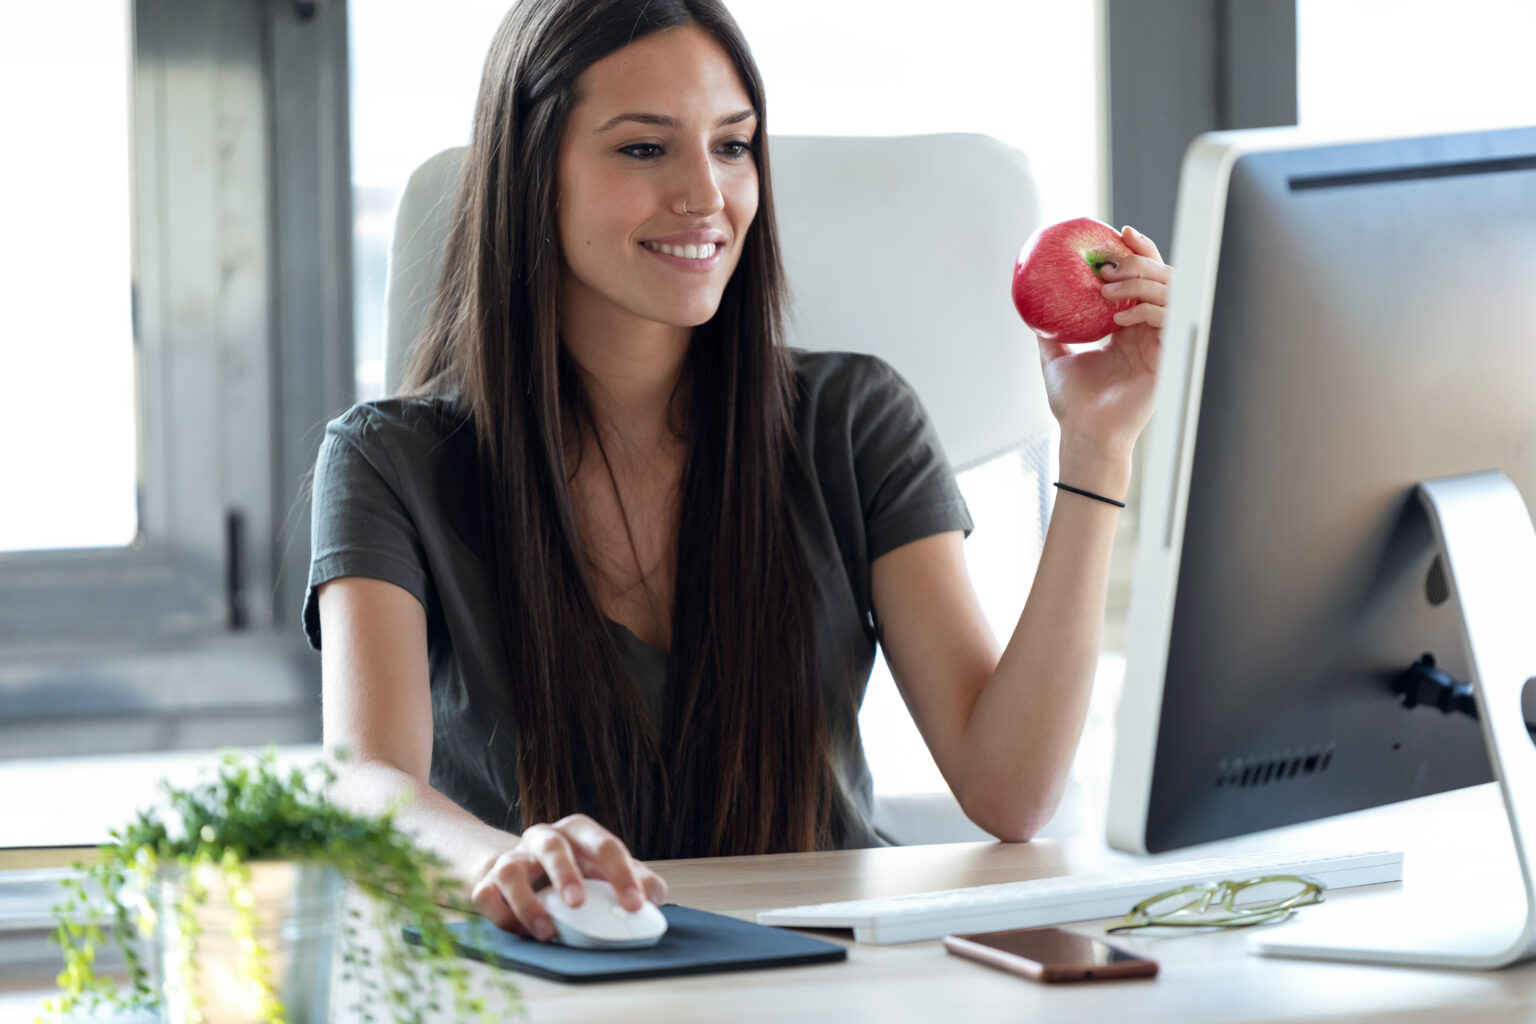 Shot of smiling young business woman eating a red apple while working with computer in the office.